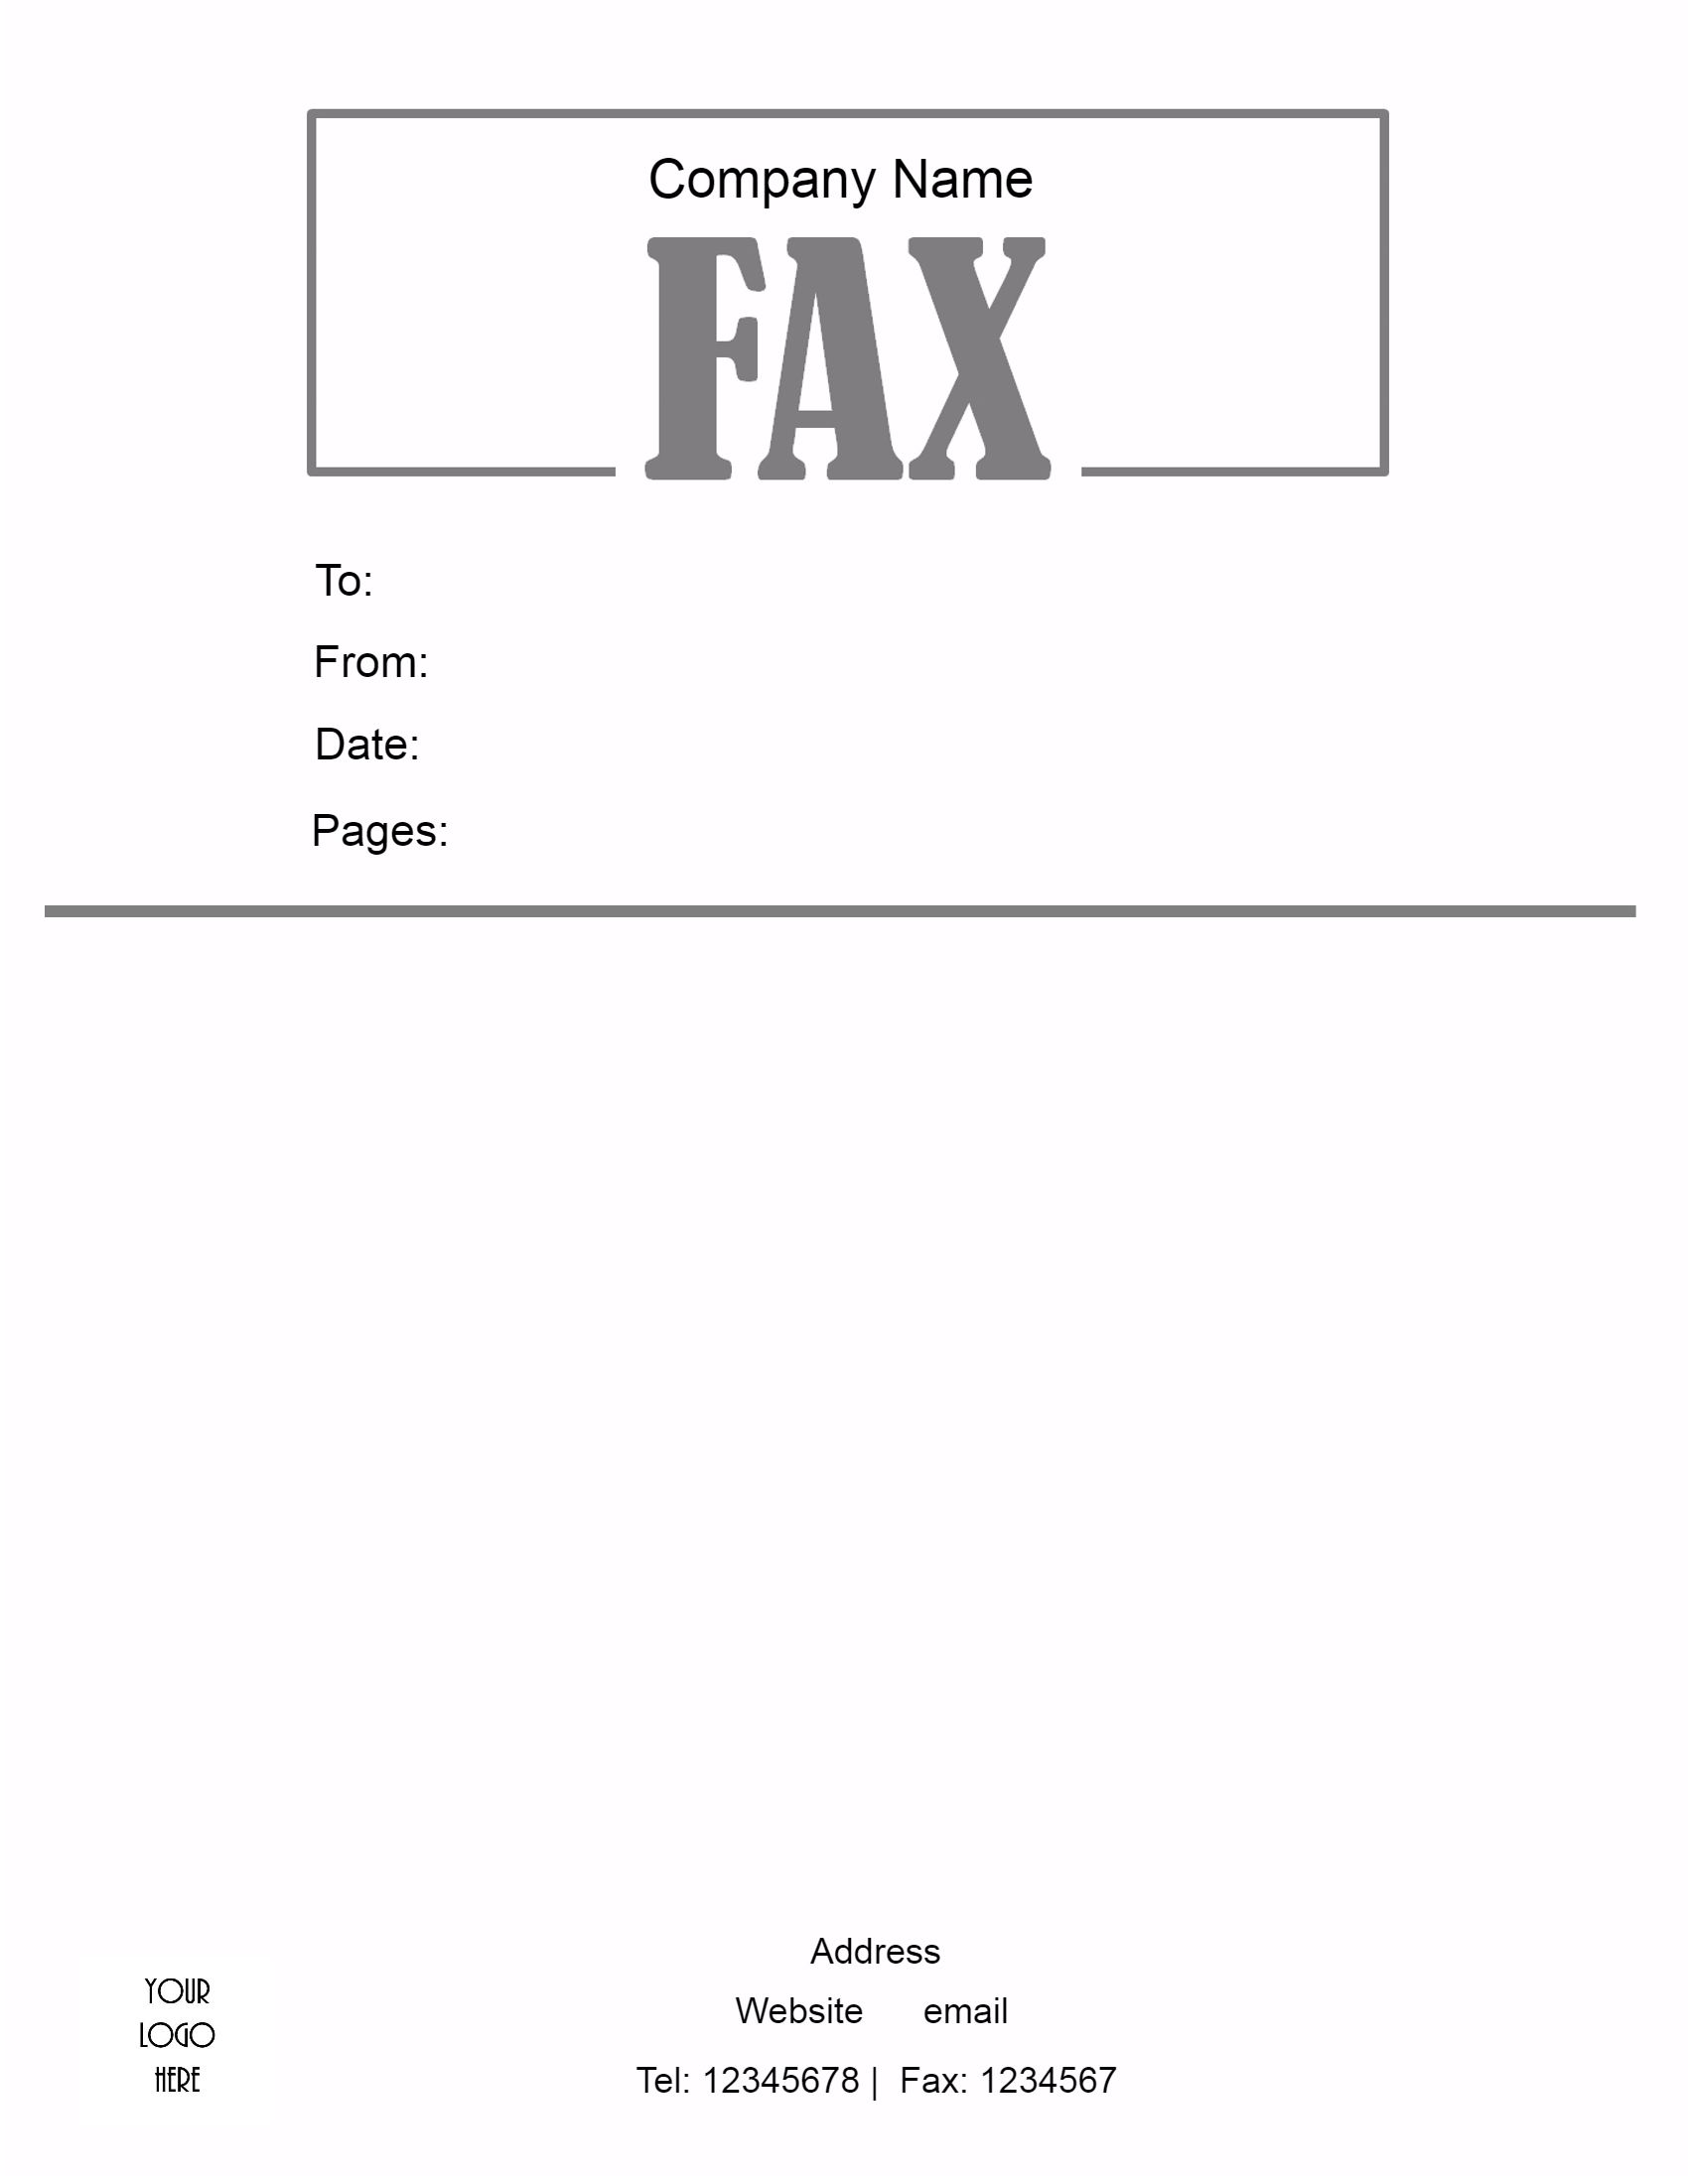 doc fax template cover sheet word fax cover fax cover letter template fax template cover sheet word